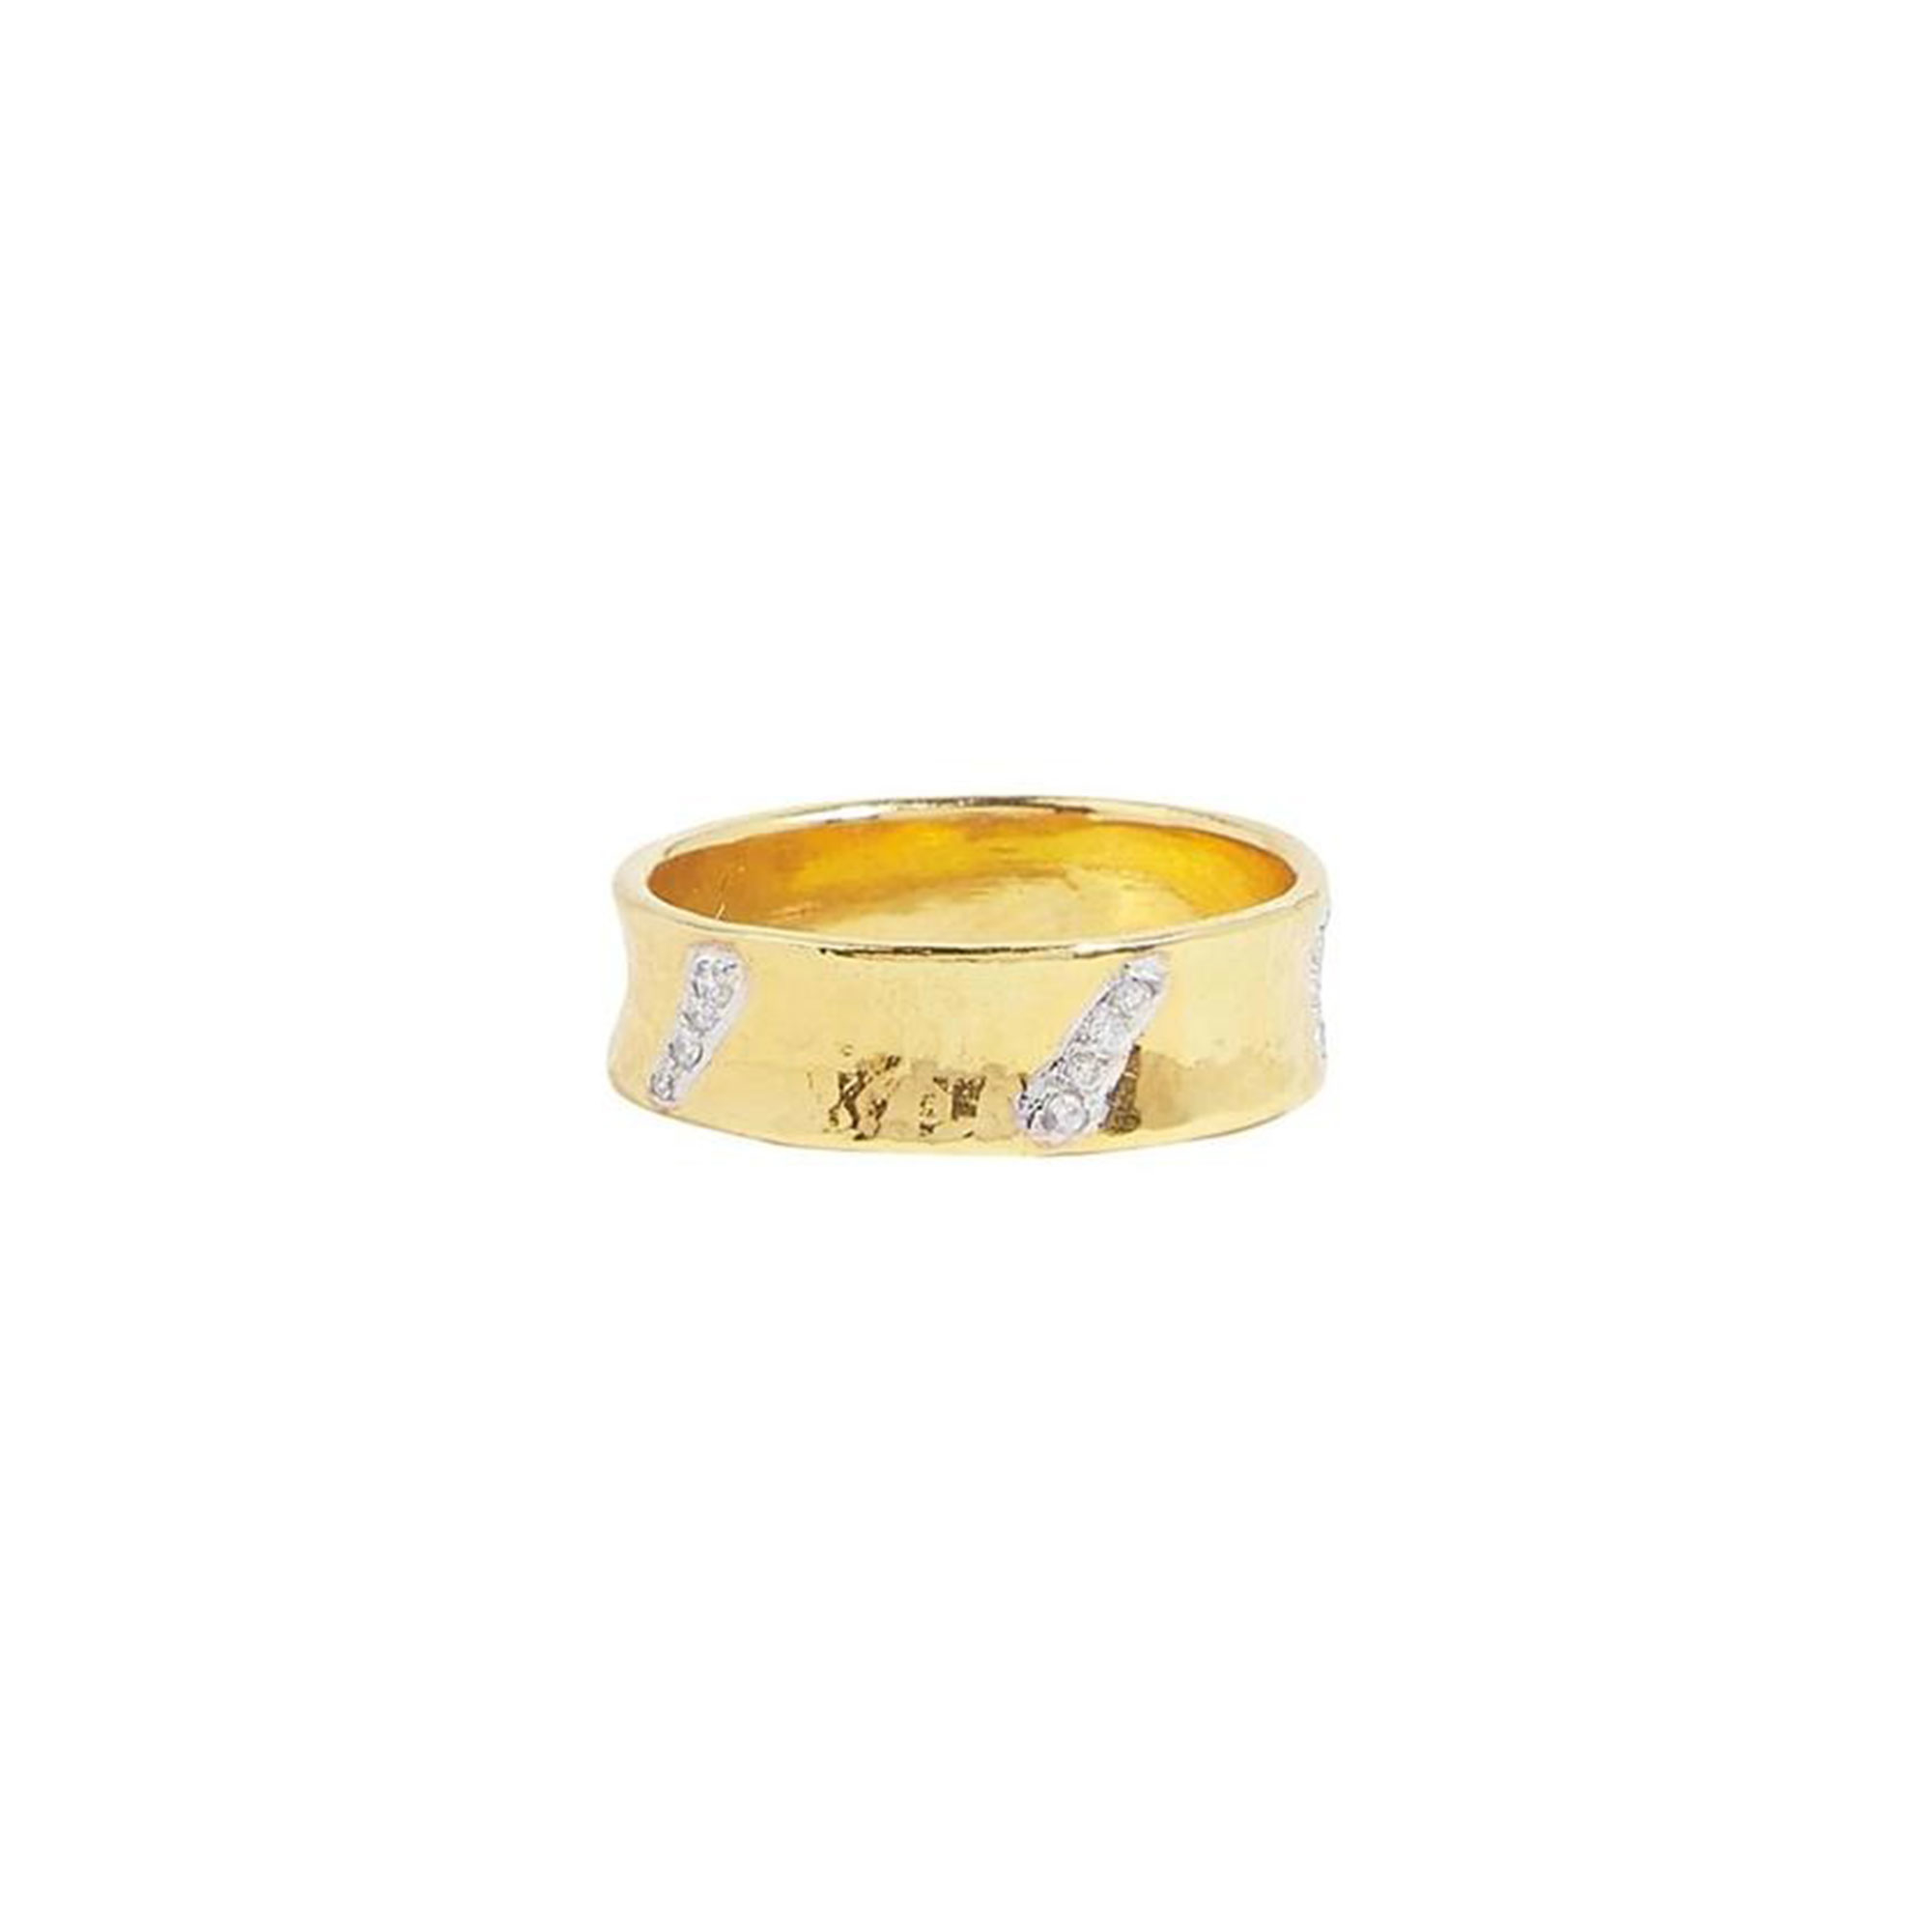 Gurhan 22K Yellow Gold .08cts White Diamond Gold Ring with Stones GUR-YG-DI65-2573